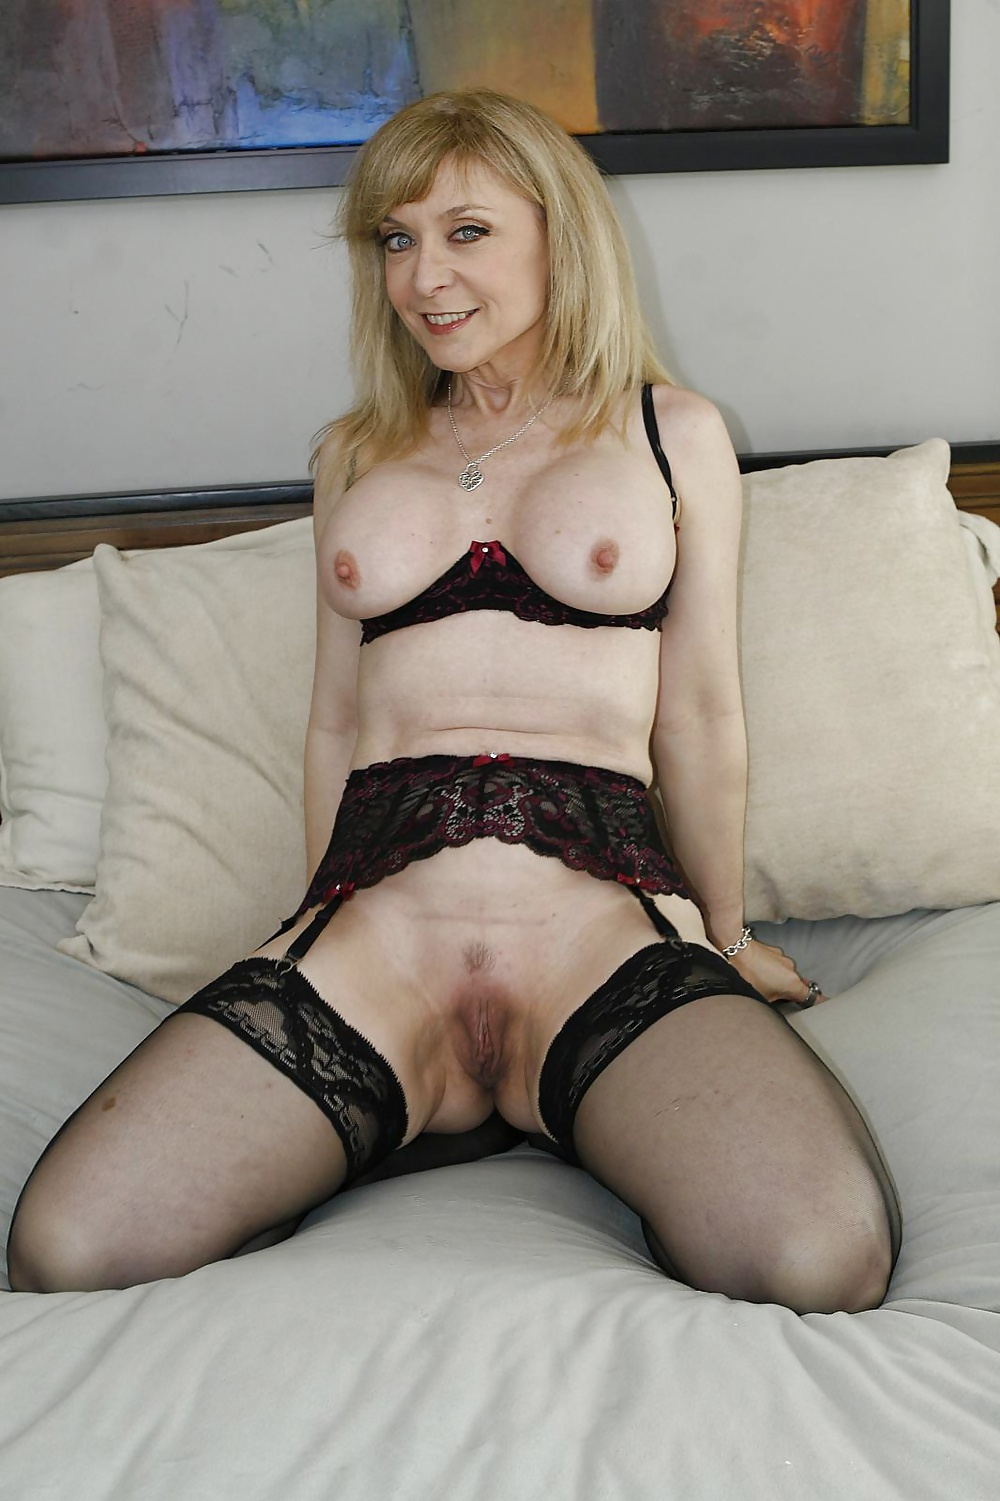 nina-hartley-spread-eagle-photos-latinas